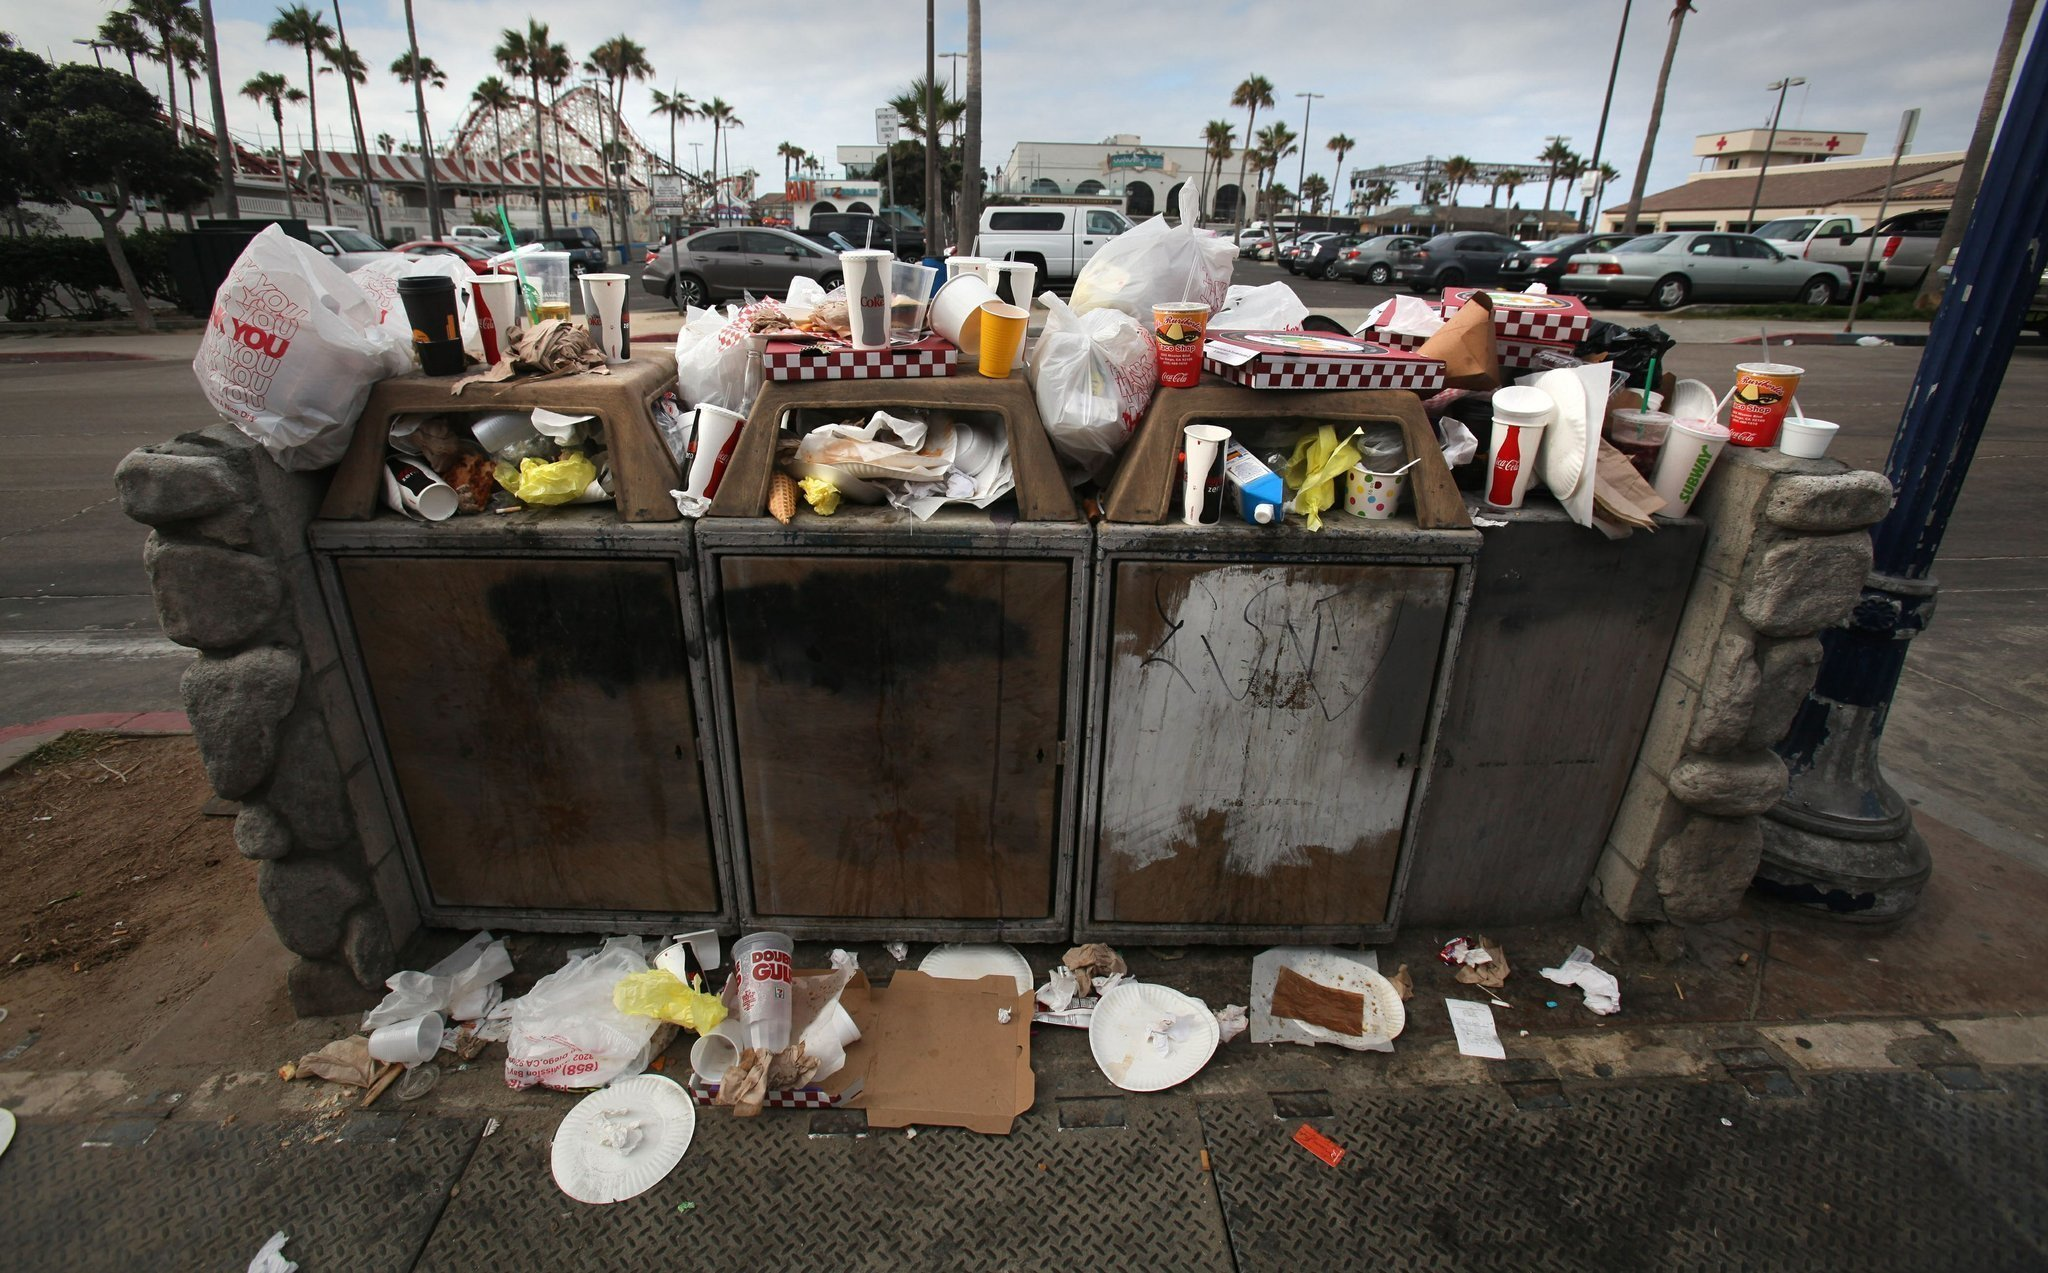 San Diego Approves Plastic Bag Ban City Votes To Become